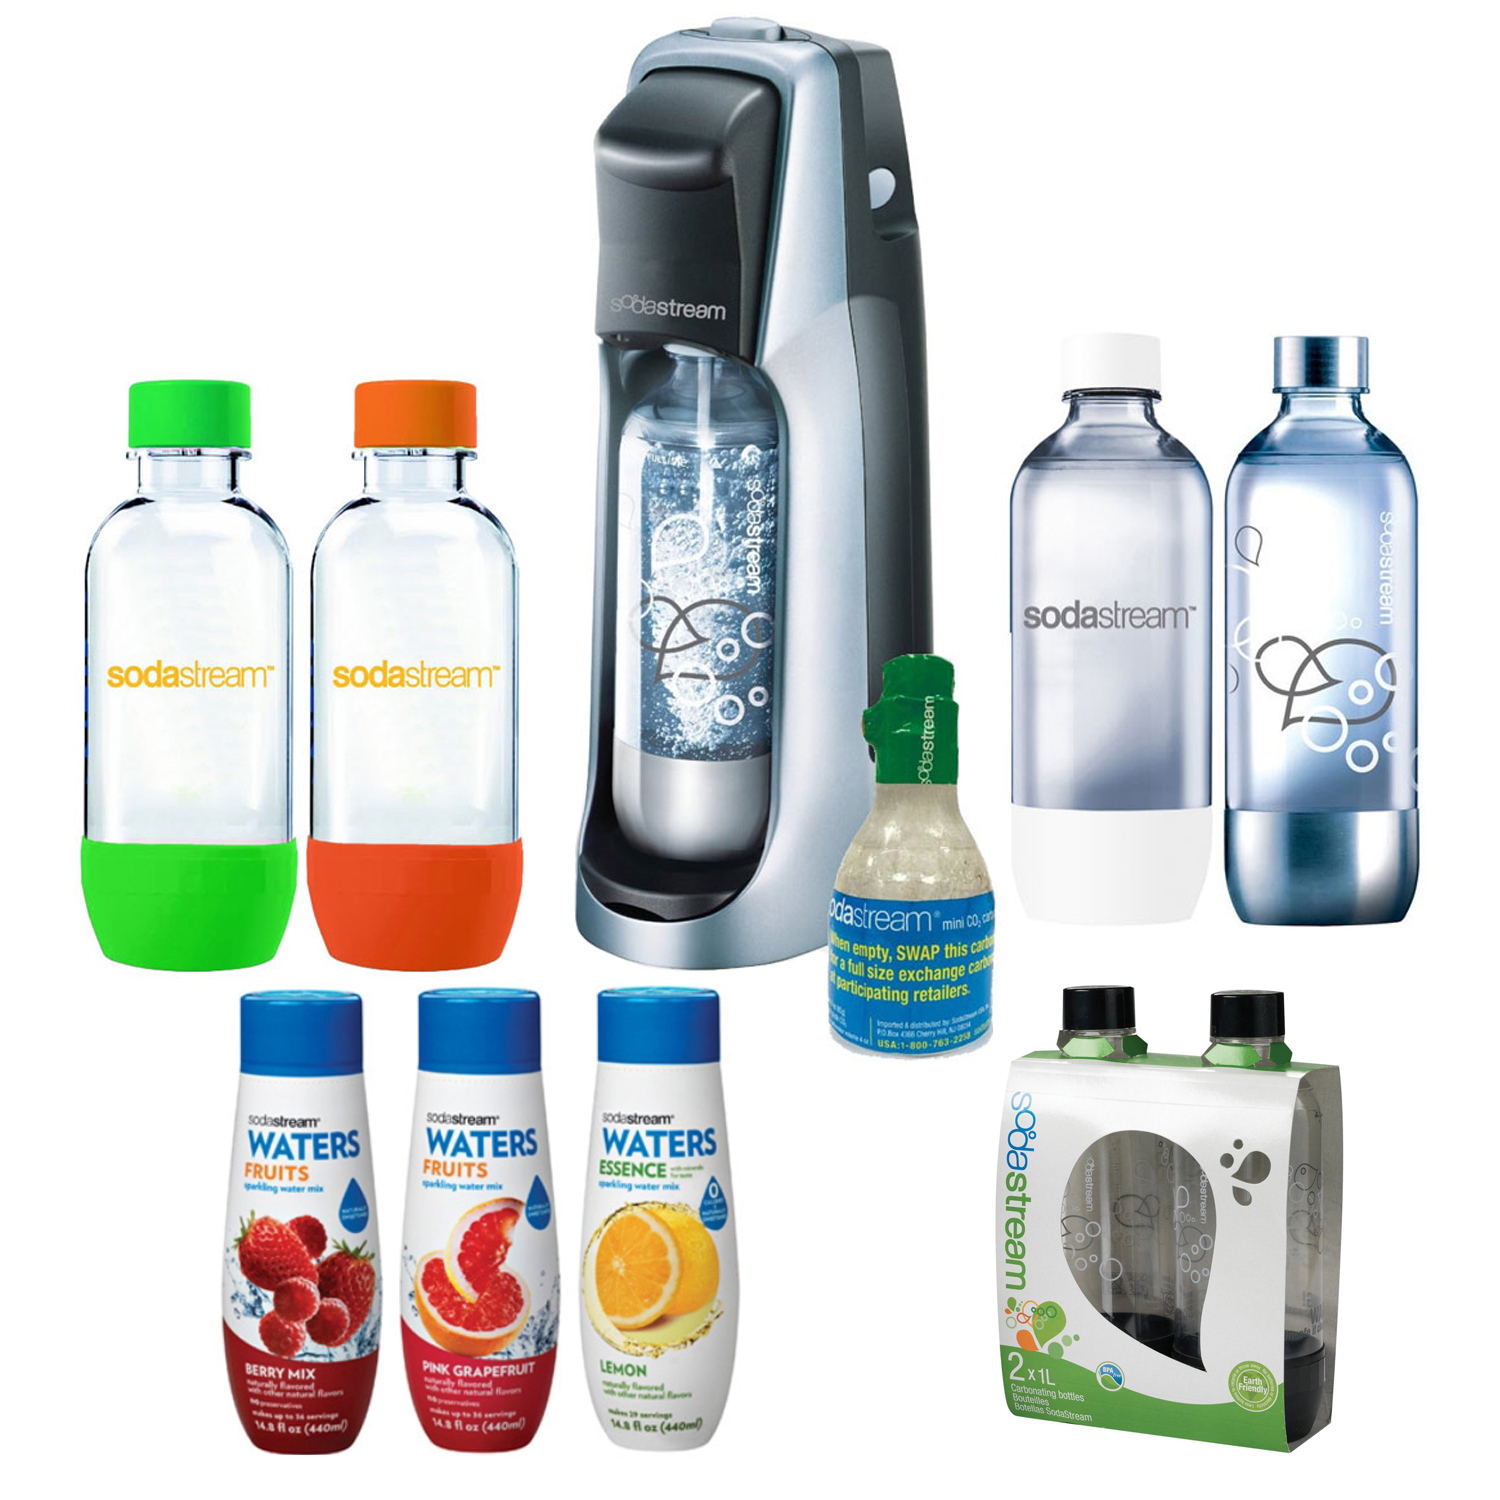 Sodastream Fountain Jet Soda Maker in Blk w/ Exclusive Kit w/ 4 Bottles & Starter Co2, 1l Carbonating Bottles Blk, Water Fruit w/ Berry Mix & Pink Grapefruit Flvr & Water Essence w/ Lemon Flvr